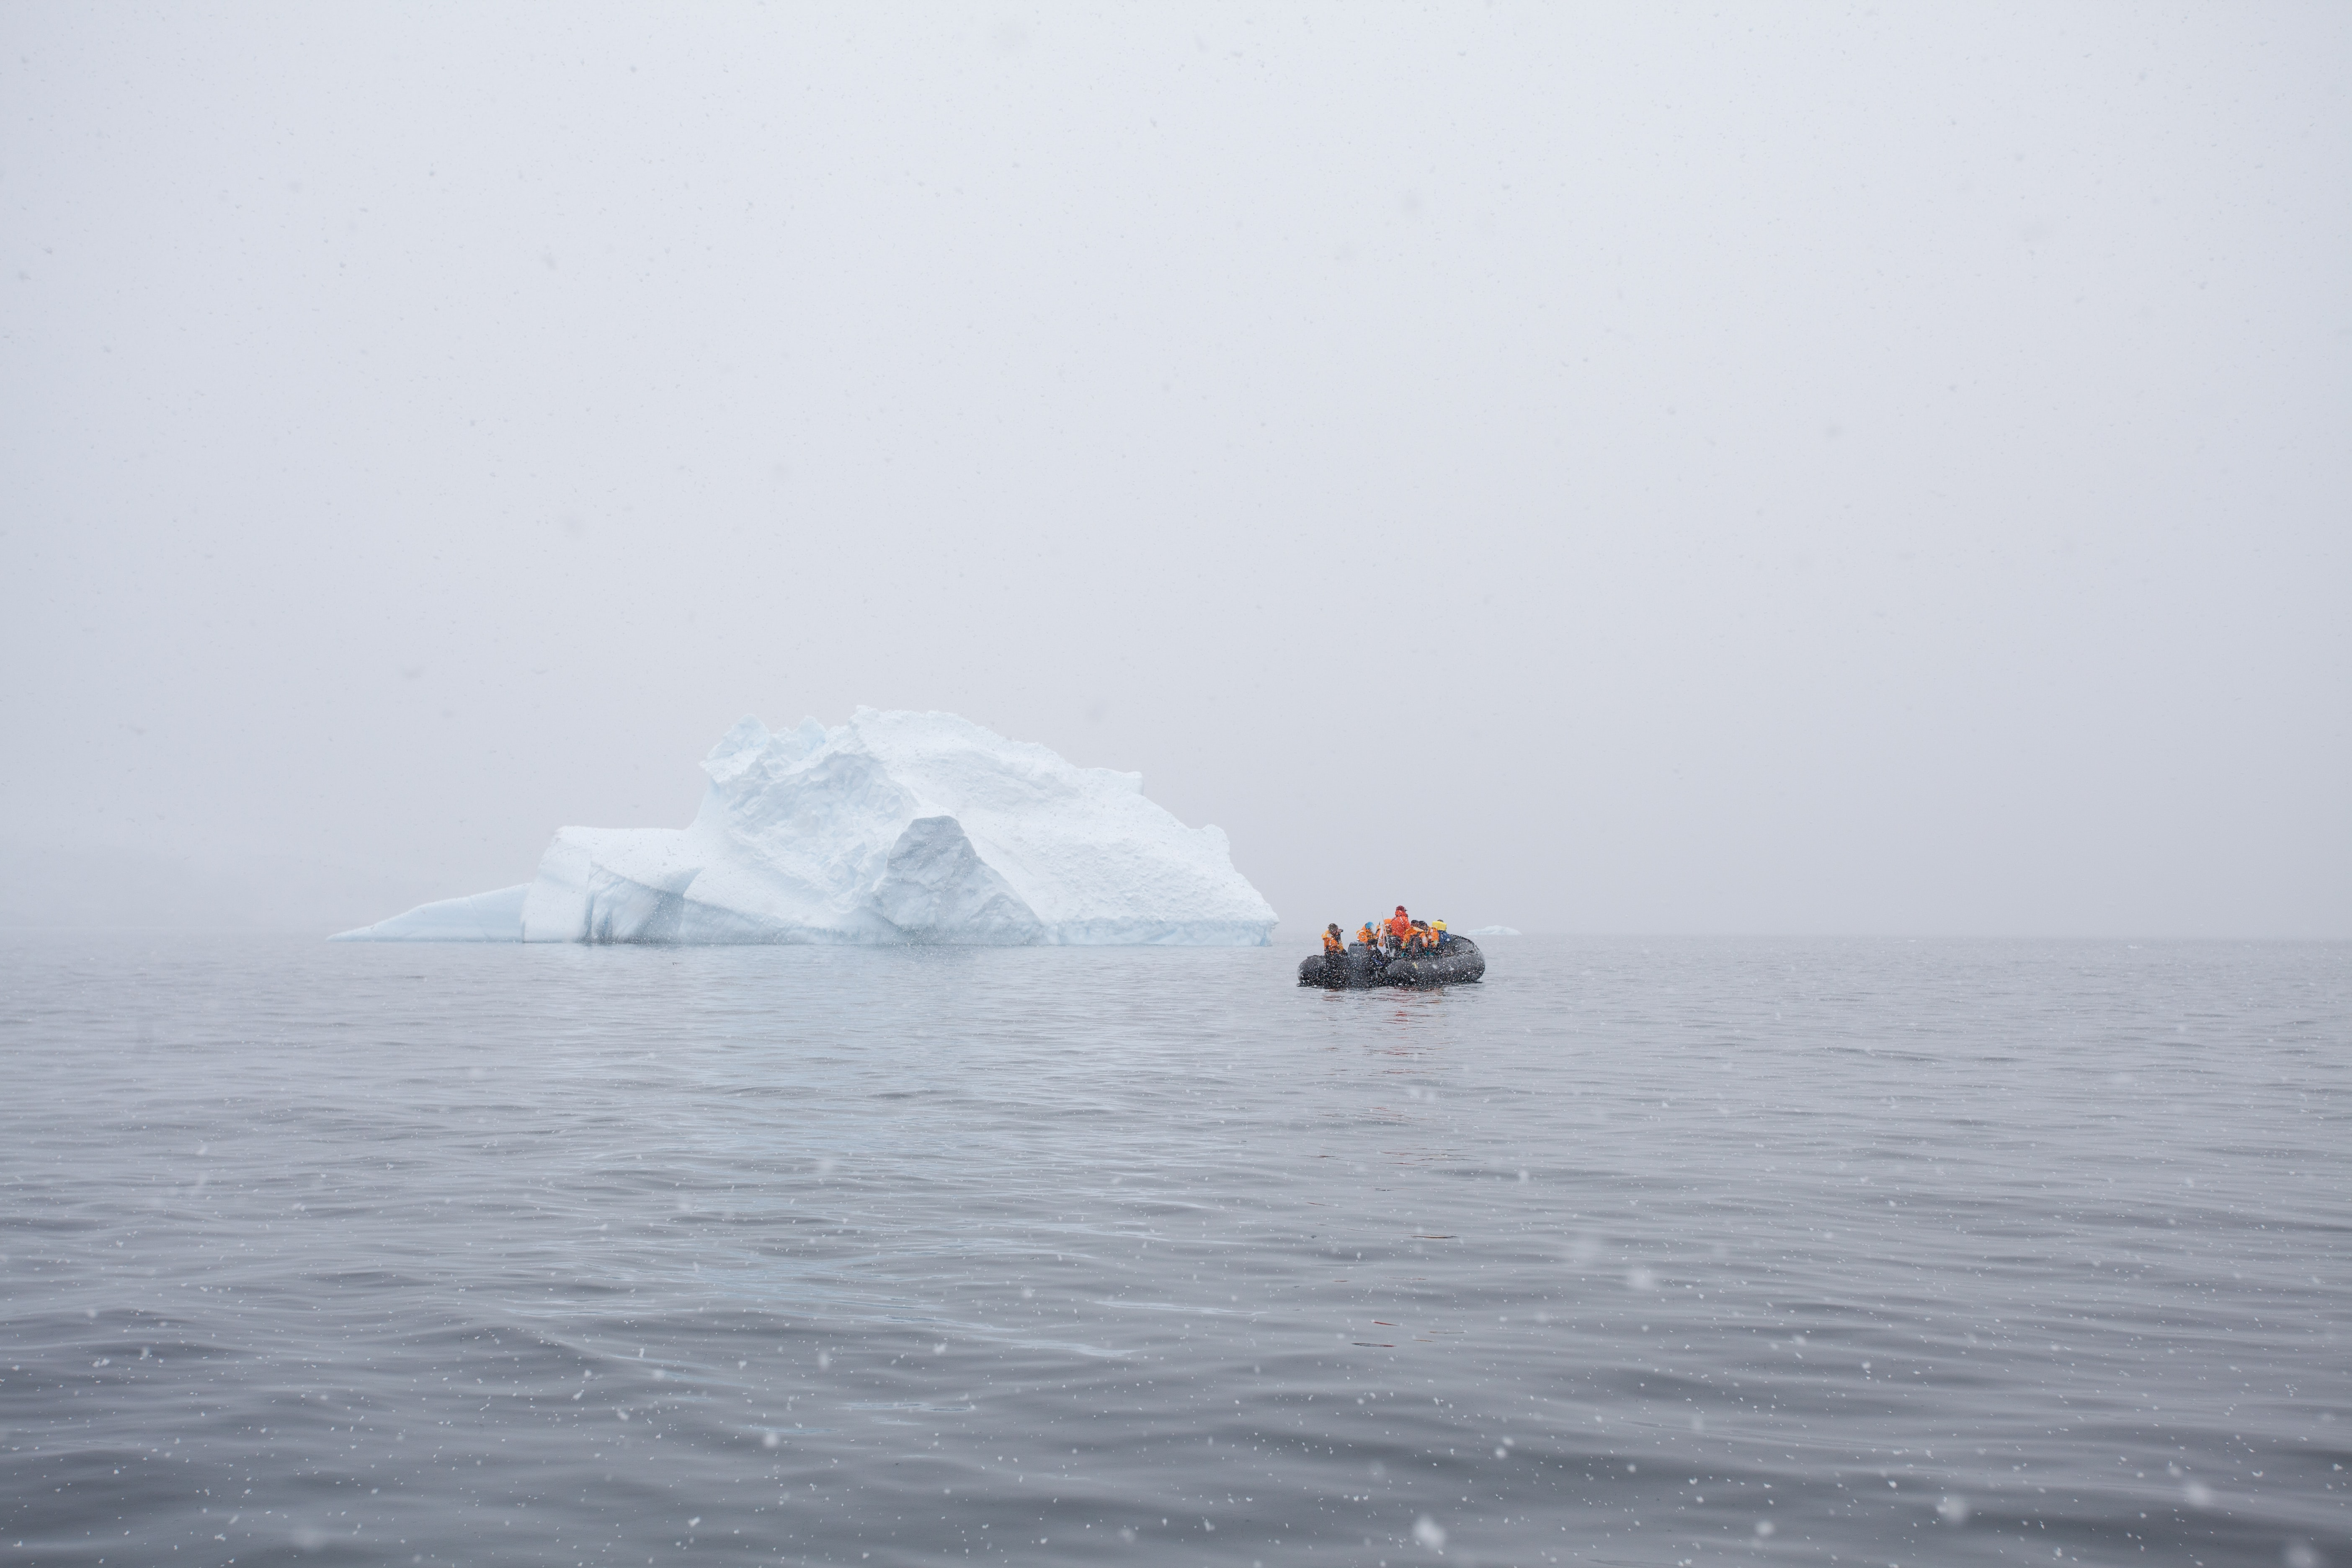 A group of people in a raft in the middle of the ocean next to a small iceberg with fog surrounding the area.